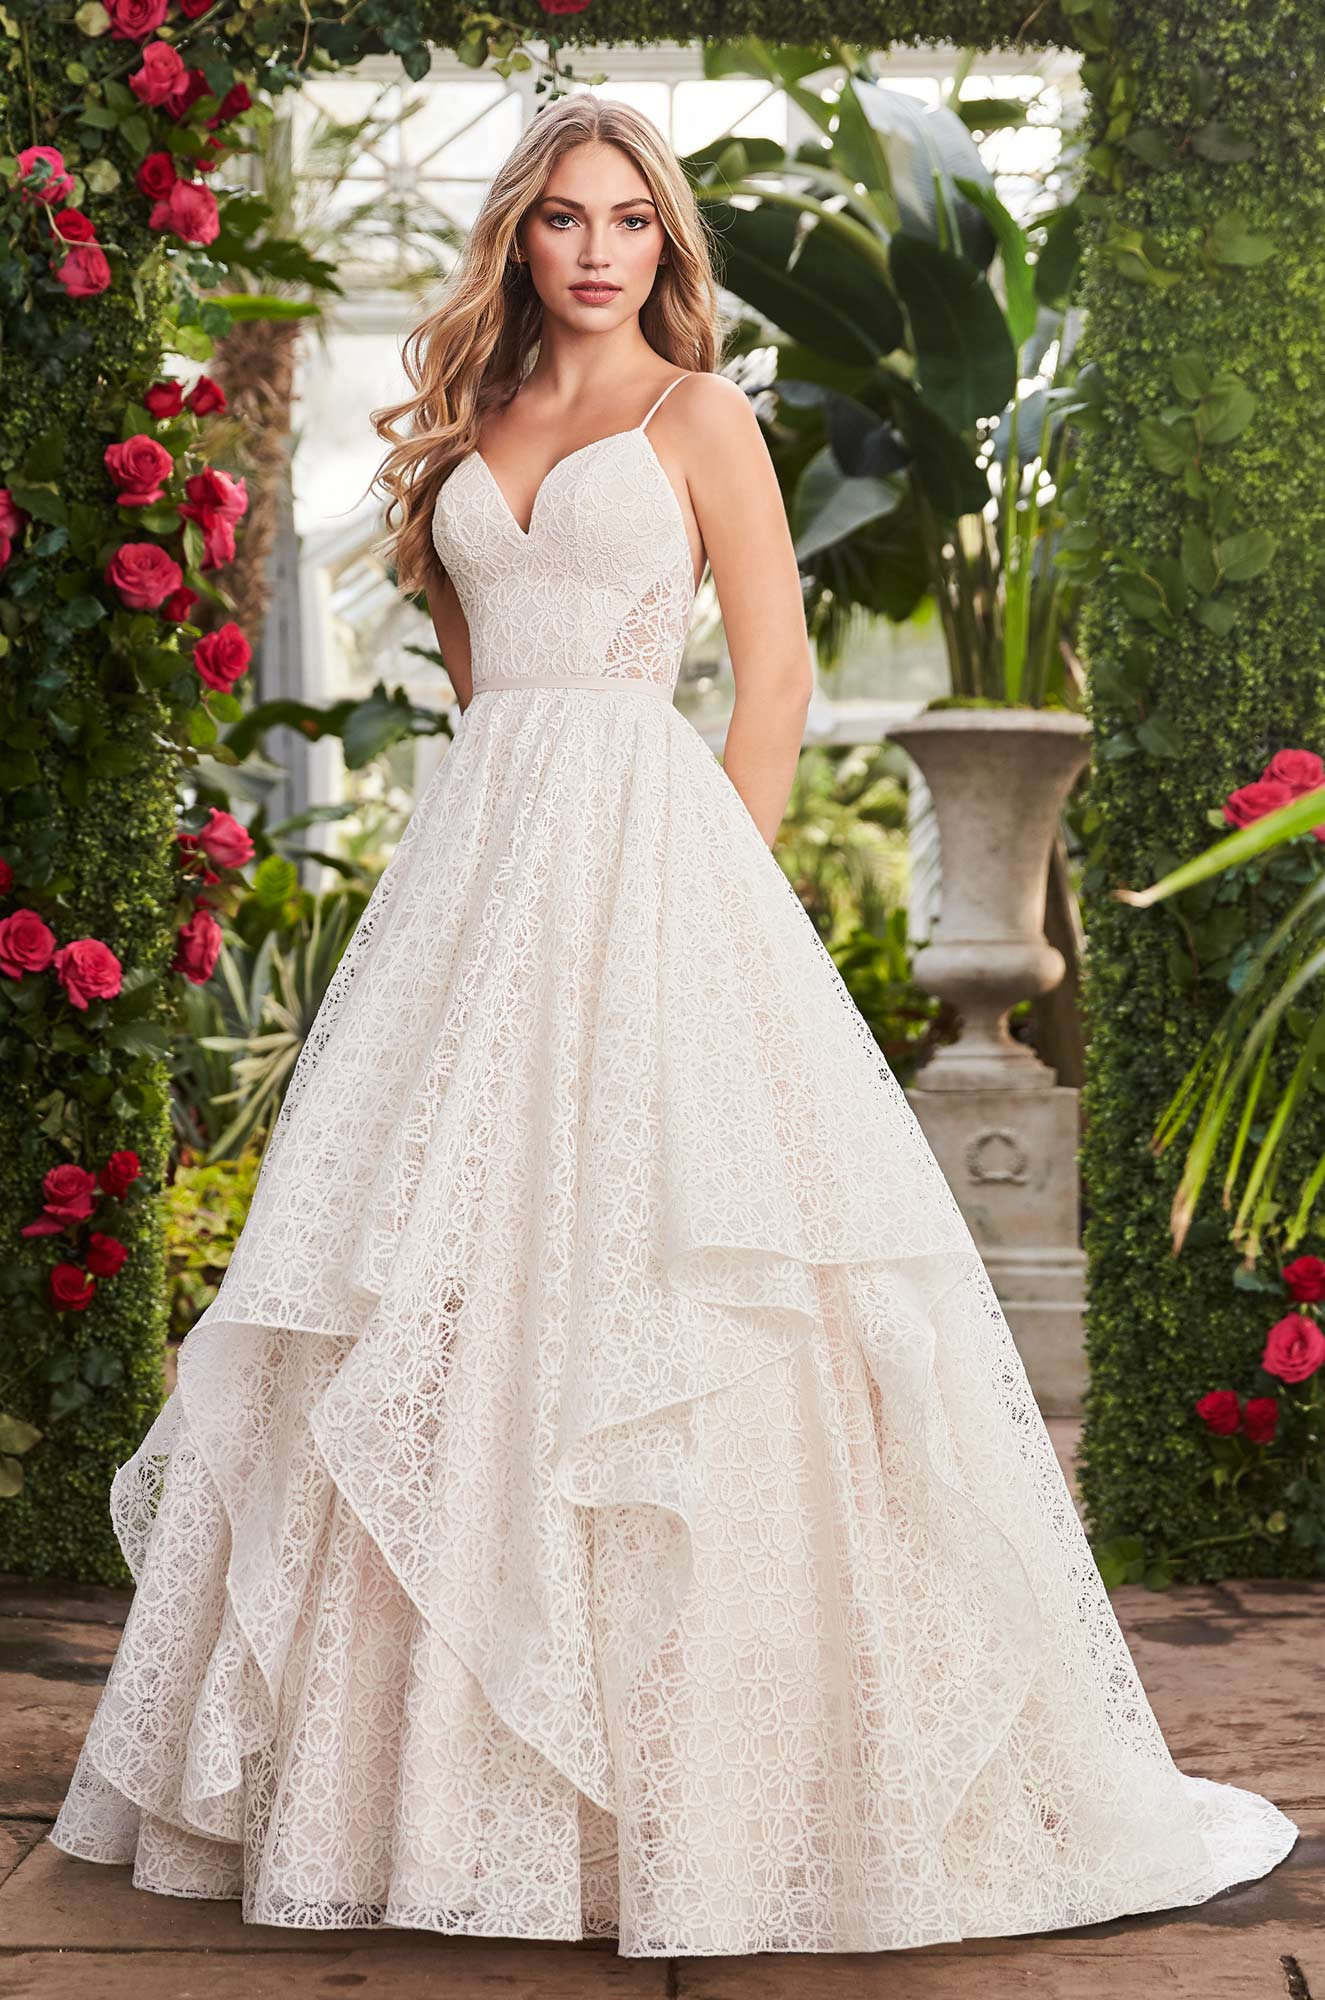 Geometric Lace Wedding Dress Style 2269 Mikaella Bridal